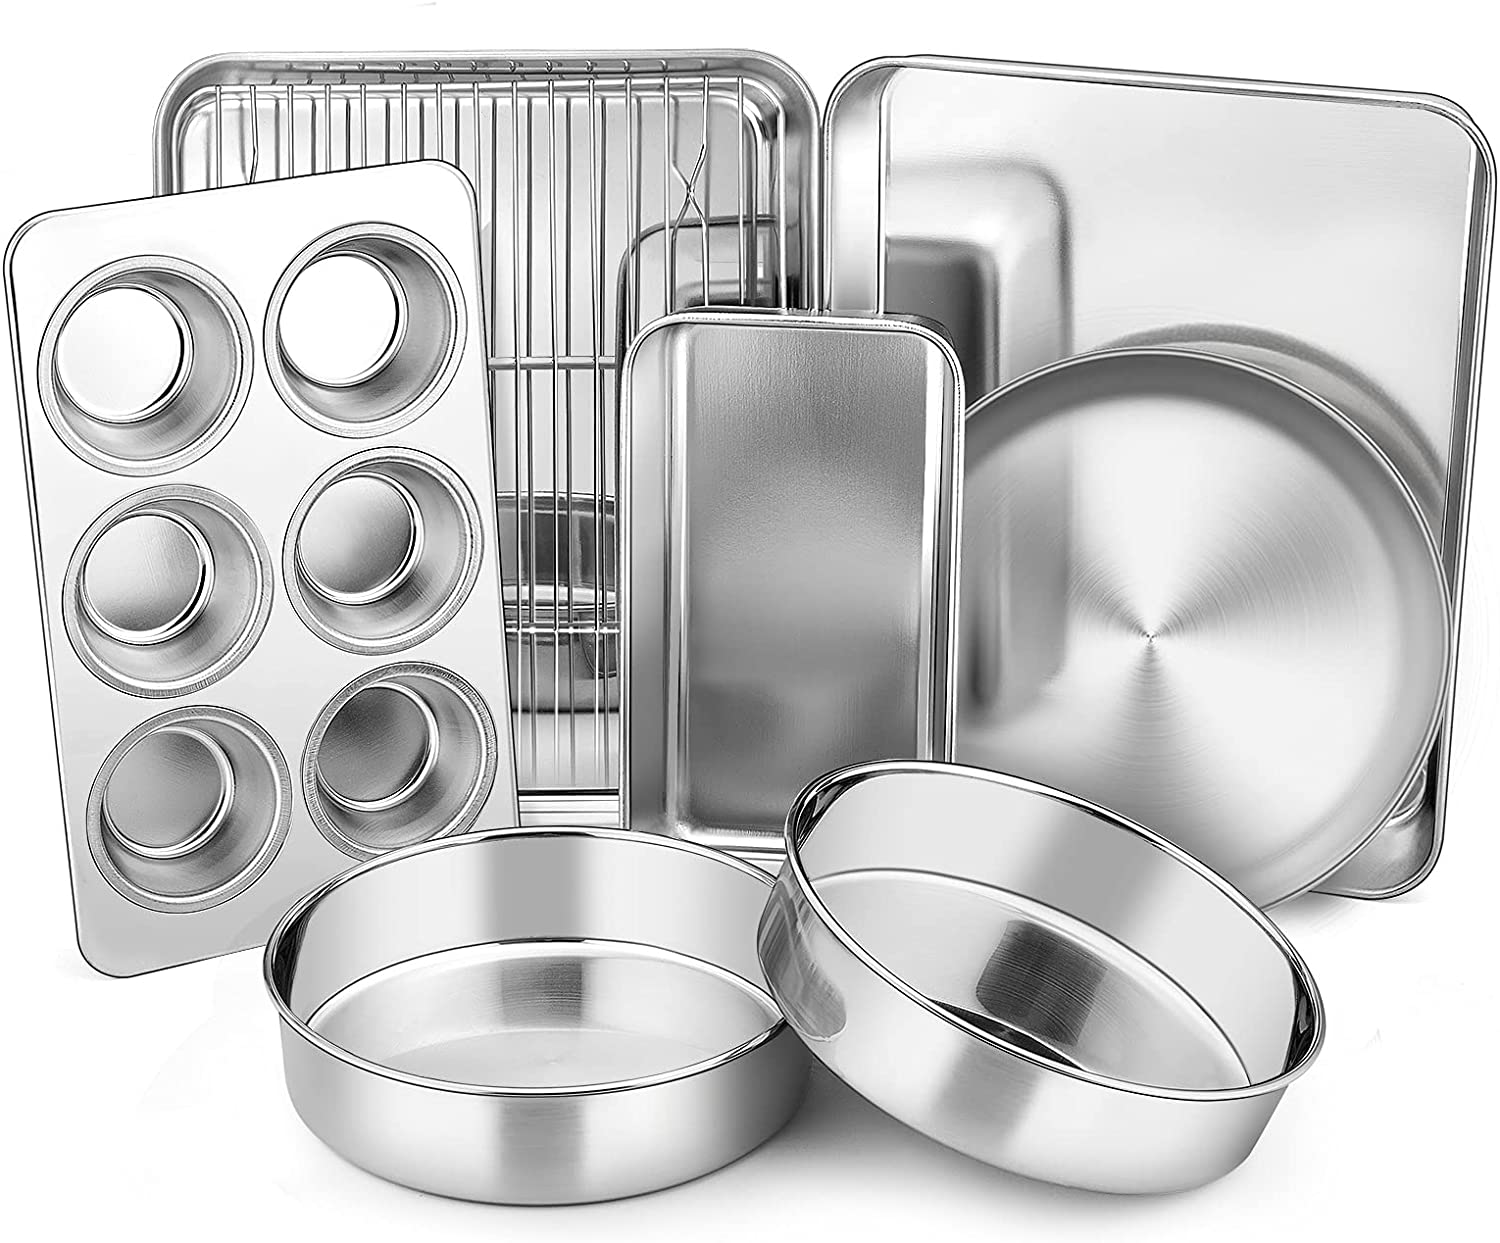 Toaster Oven Bakeware Set, E-far 8-Piece Stainless Steel Small Baking Pan Set, Include 6-Inch Cake Pan/Rectangle Baking Pan/Cookie Sheet with Rack/Muffin/Loaf/Pizza Pan, Non-Toxic & Dishwasher Safe